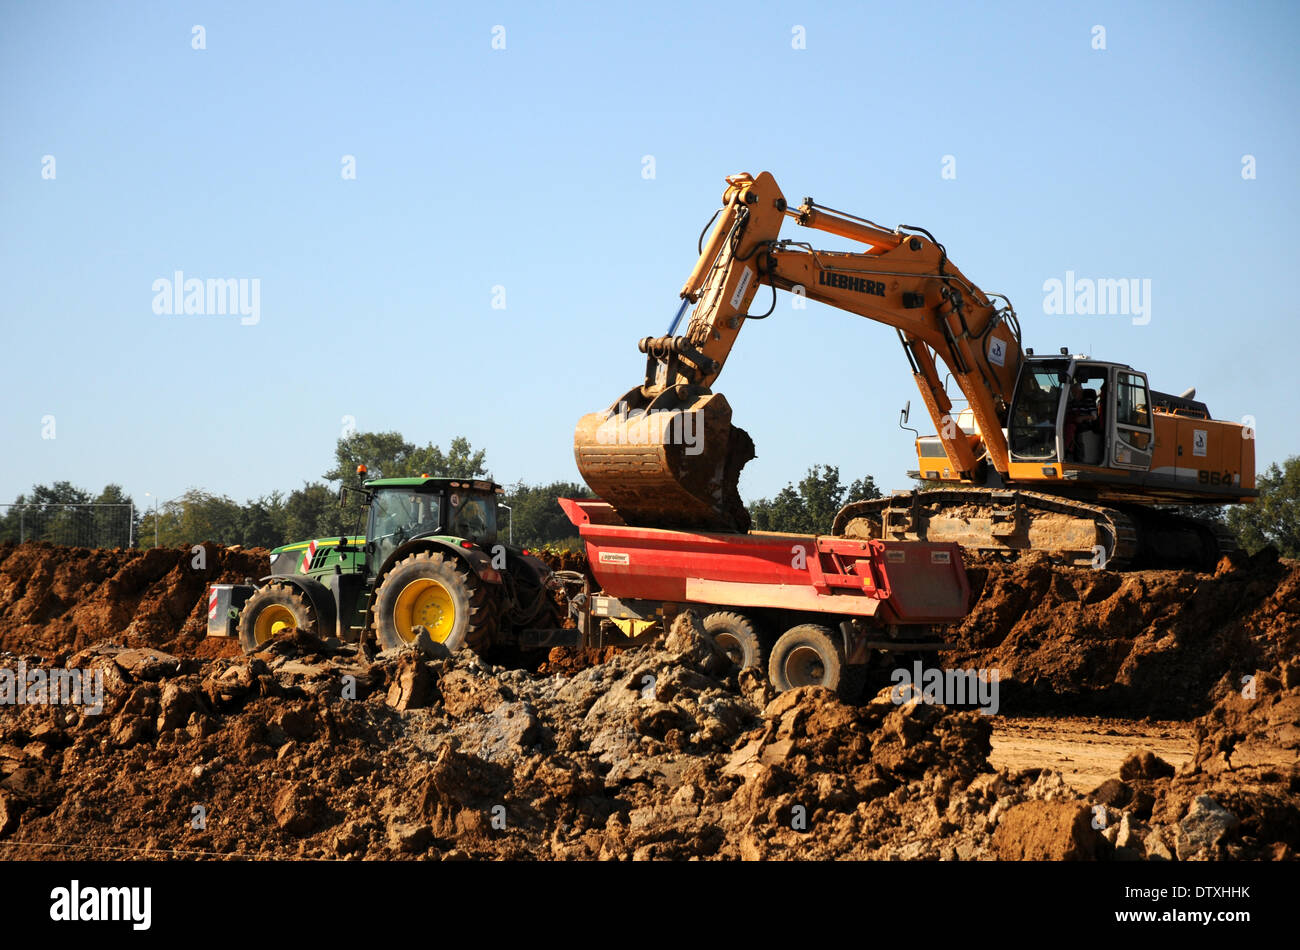 Excavating and transporting soil - Stock Image